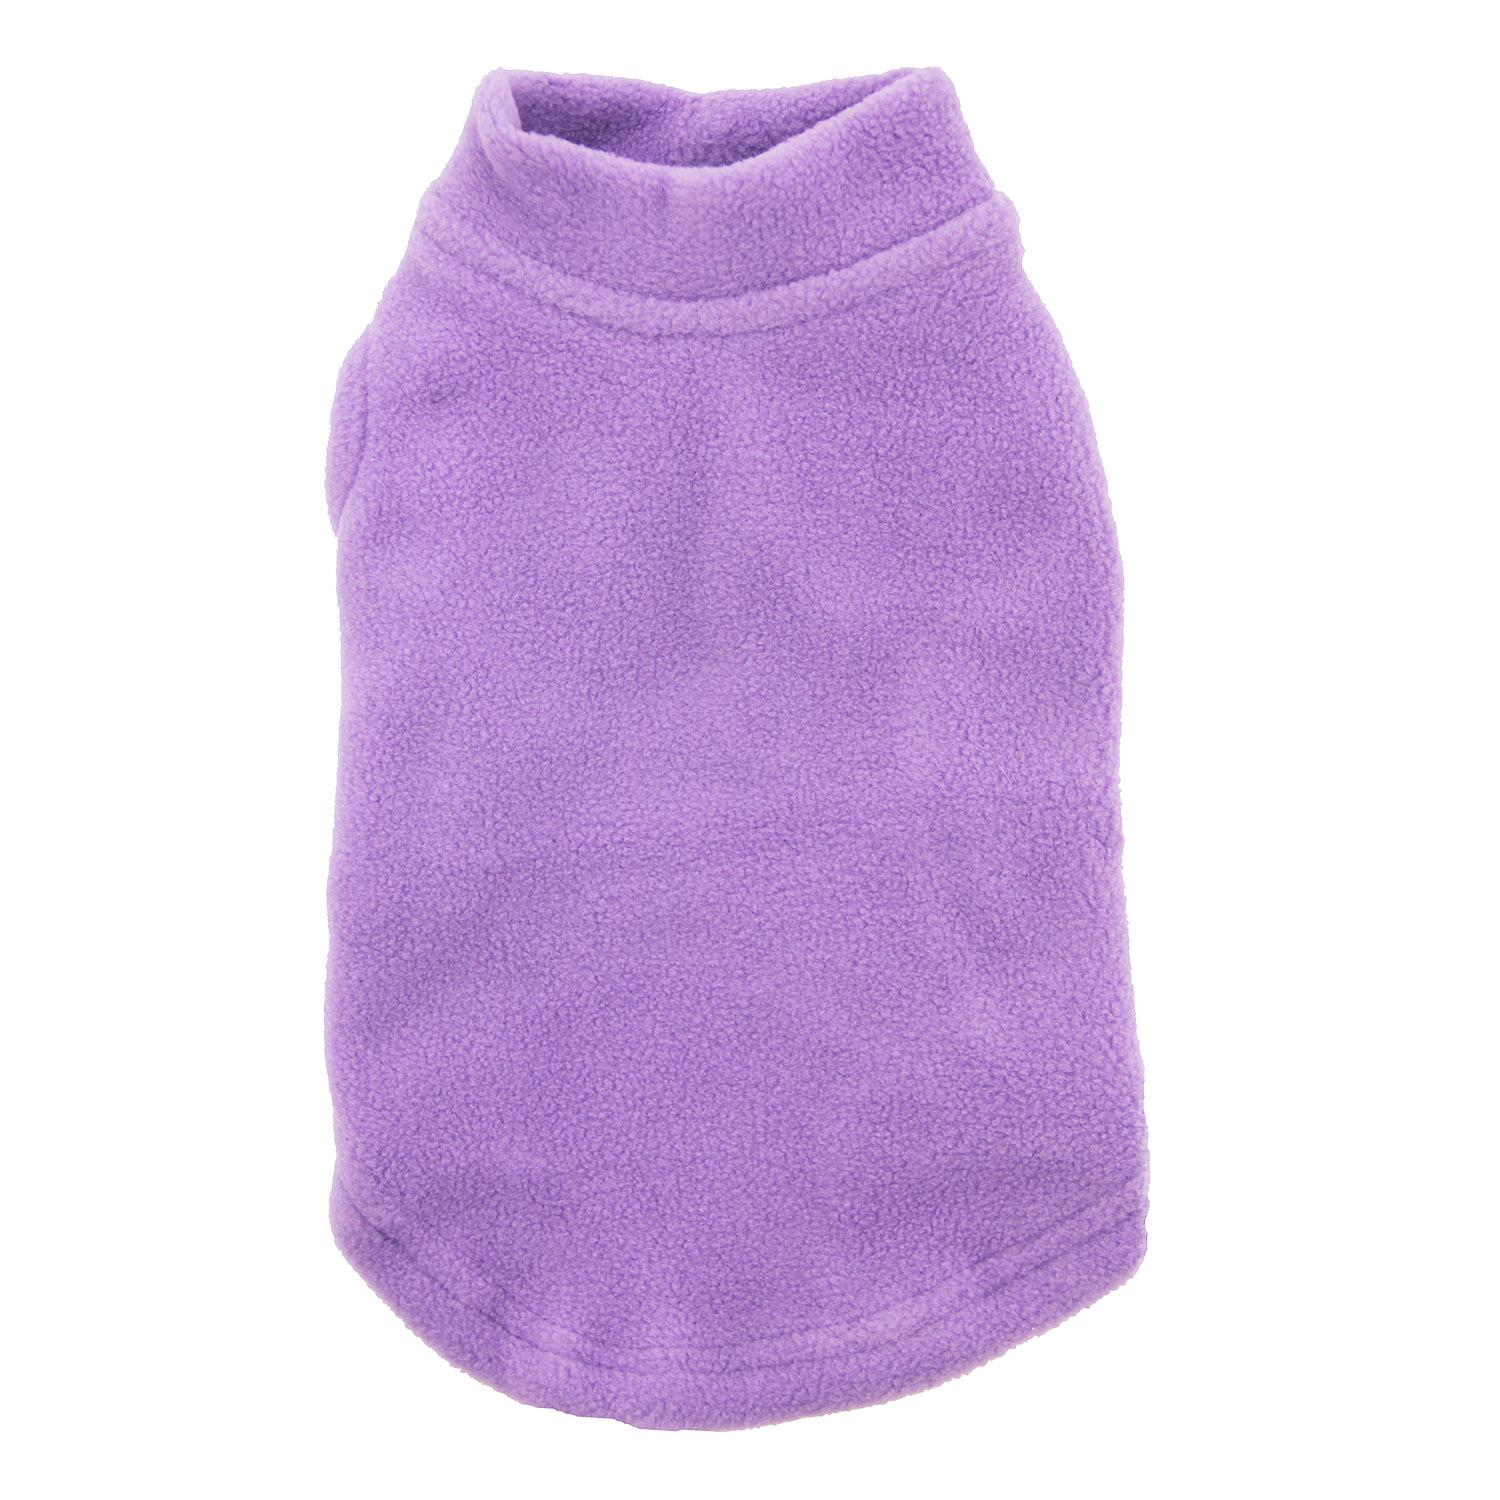 Stretch Fleece Dog Vest by Gooby - Lavender